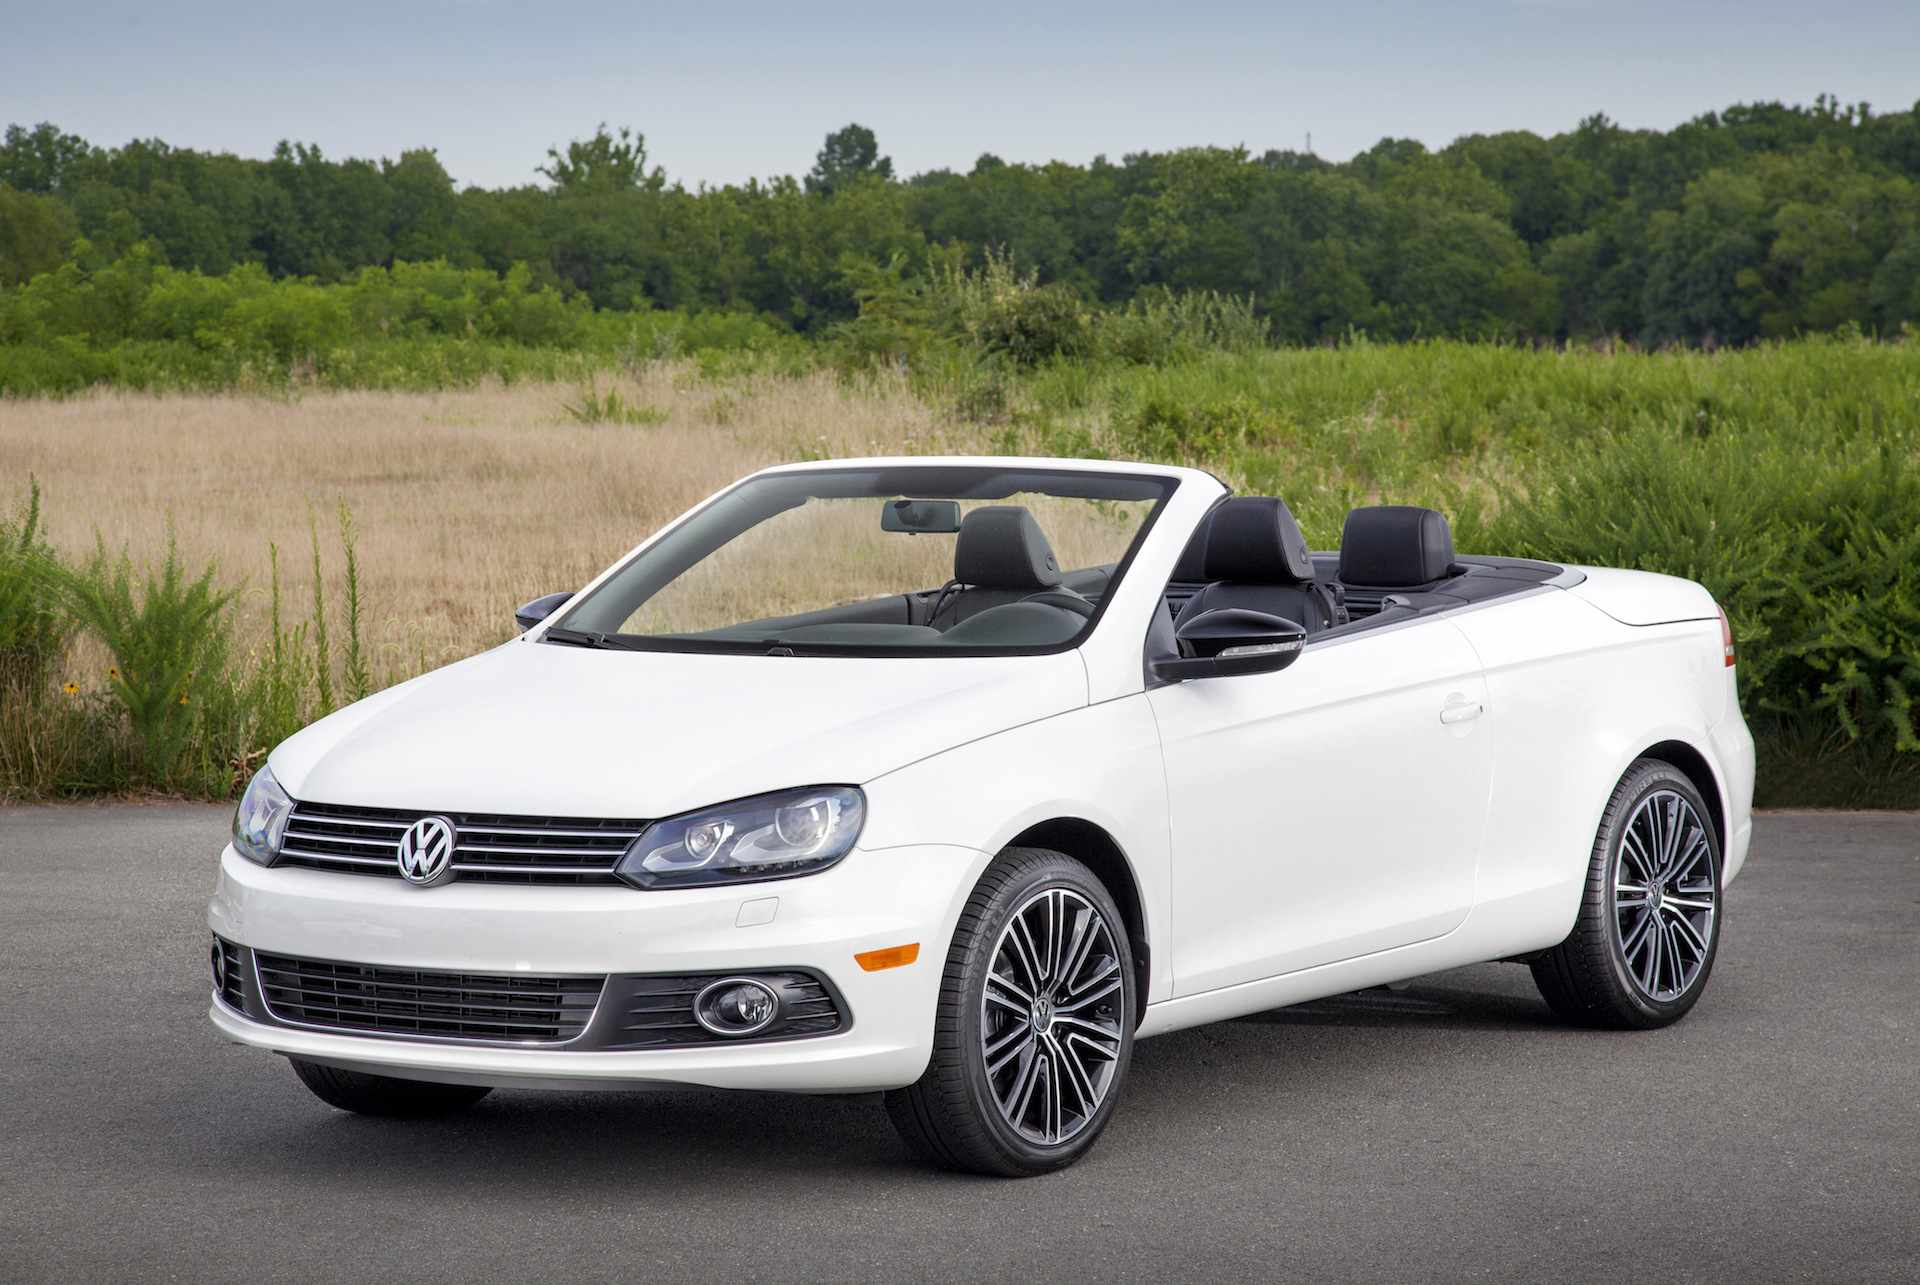 2016 Volkswagen Eos (VW) Review, Ratings, Specs, Prices, and Photos - The Car Connection